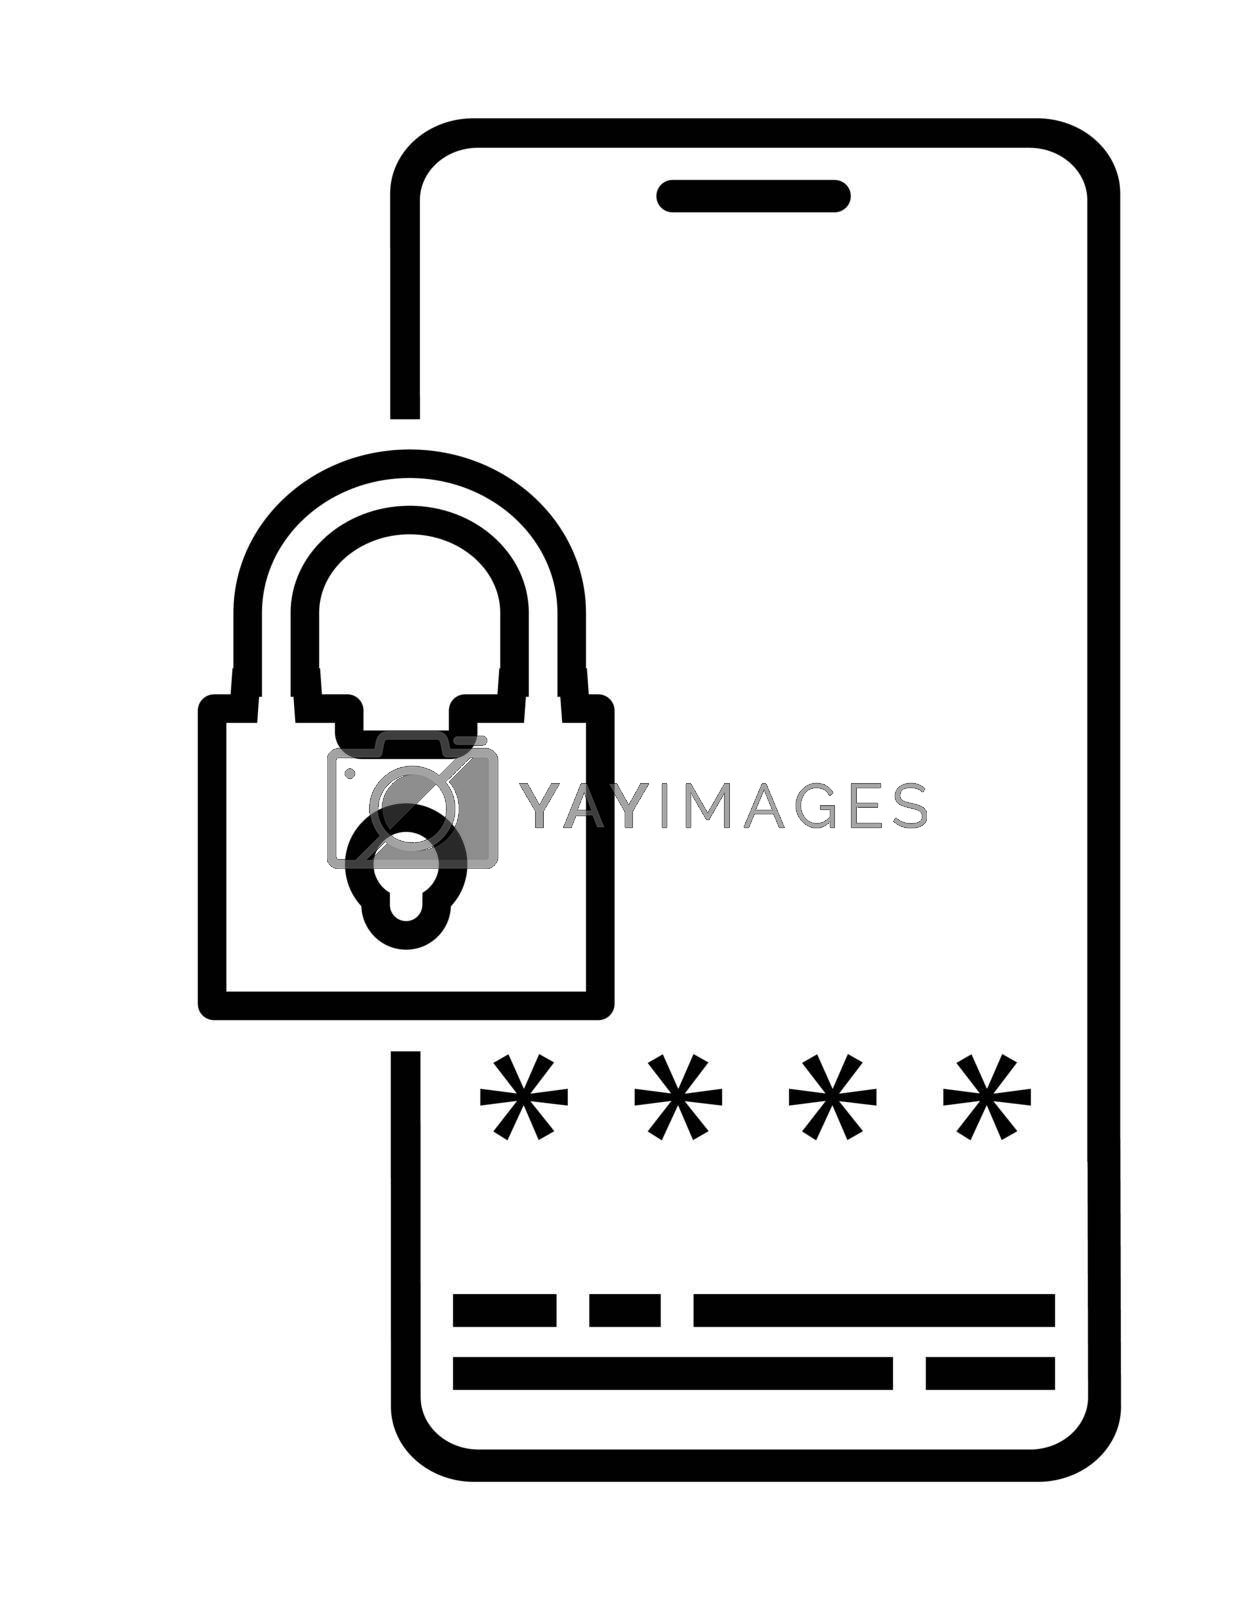 Icon. Smartphone with padlock and password entry window. Mobile phone security. Cybercrimes. Vector